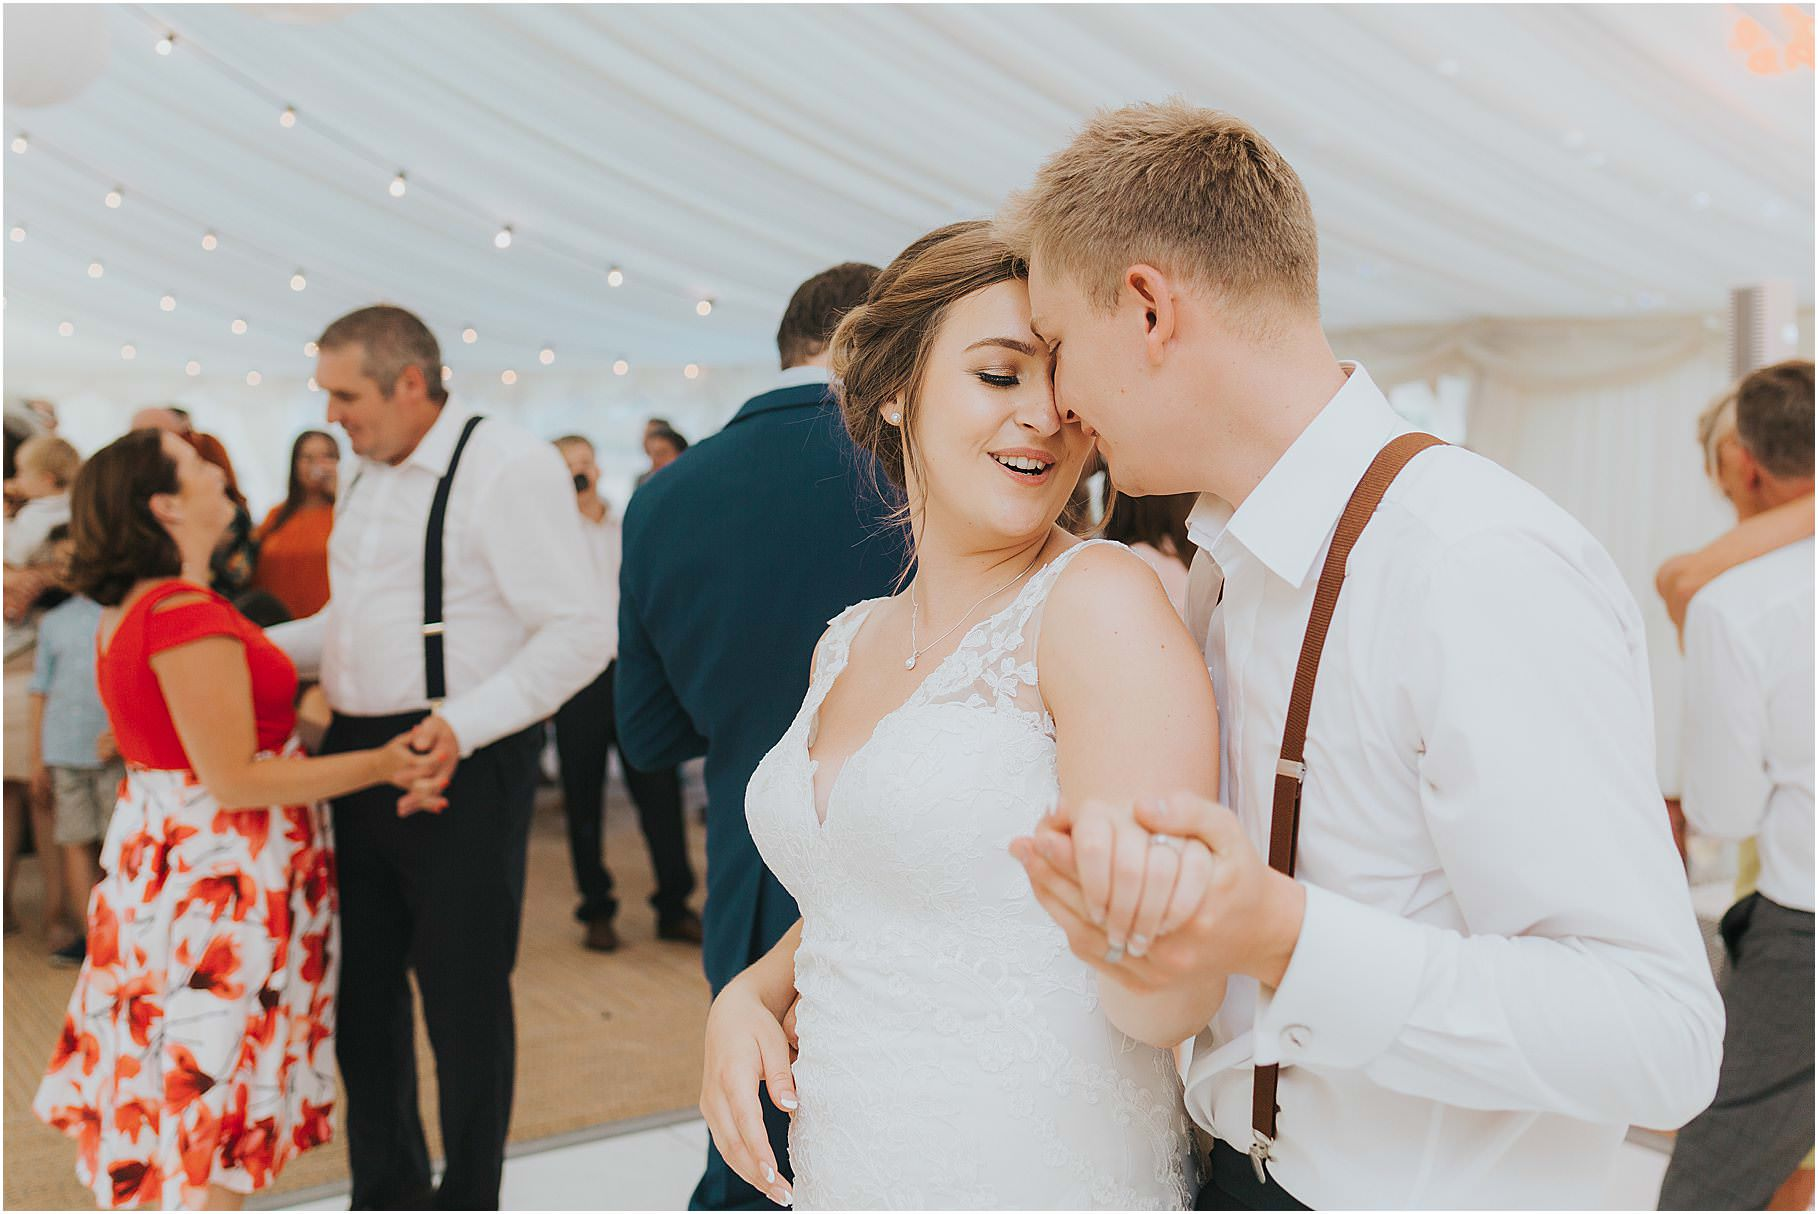 Rutland Weddings Exton Hall Exton Oakham Rutland Water Photographer 1115 - Mr and Mrs Barker // RUTLAND WEDDING